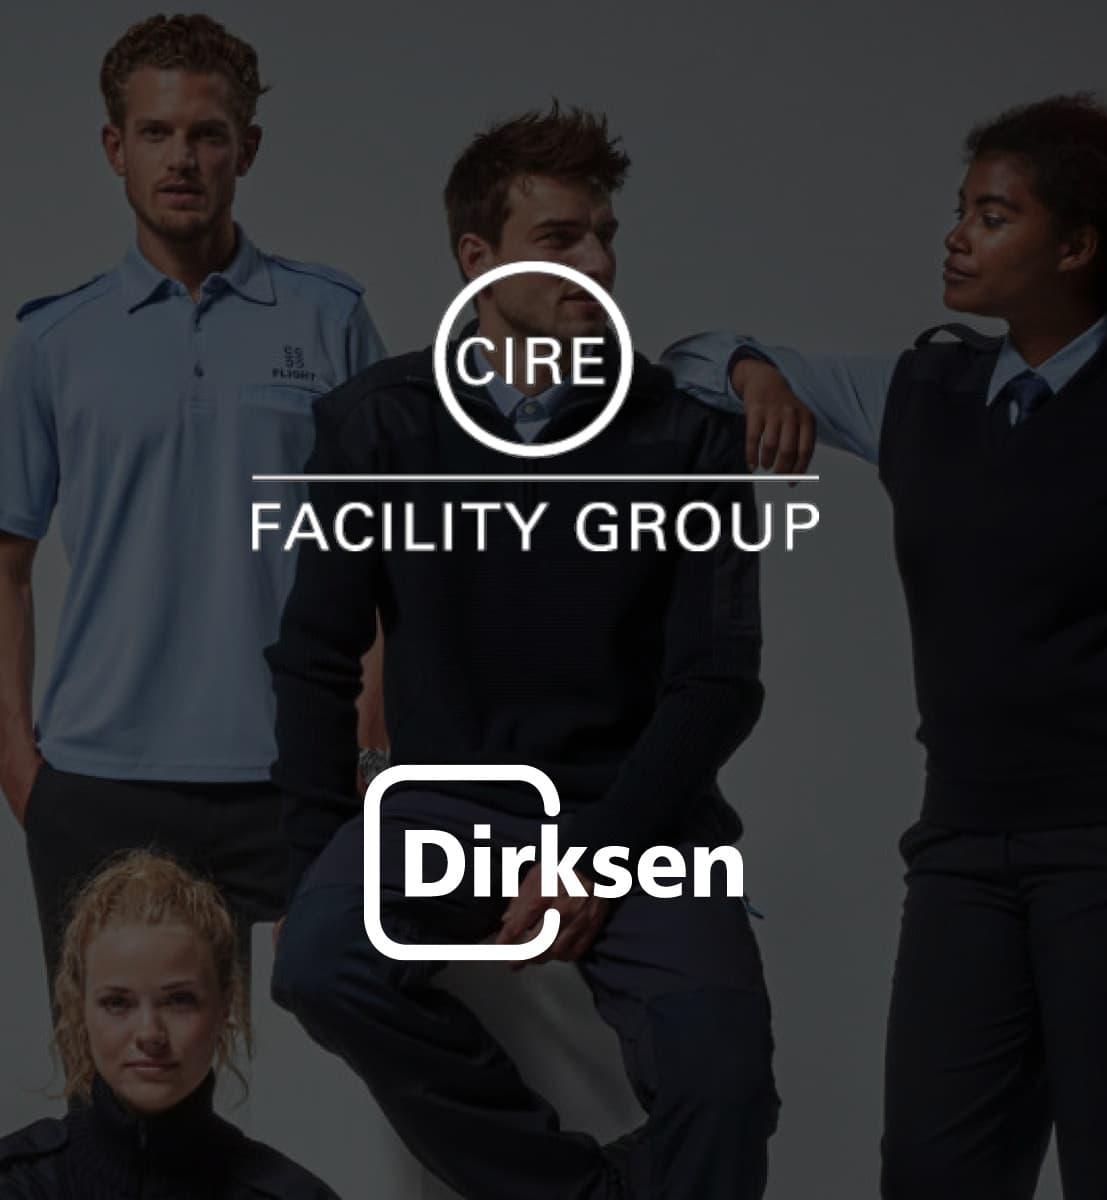 DEX international M&A advised Facility Trade Group on the acquisition of Dirksen